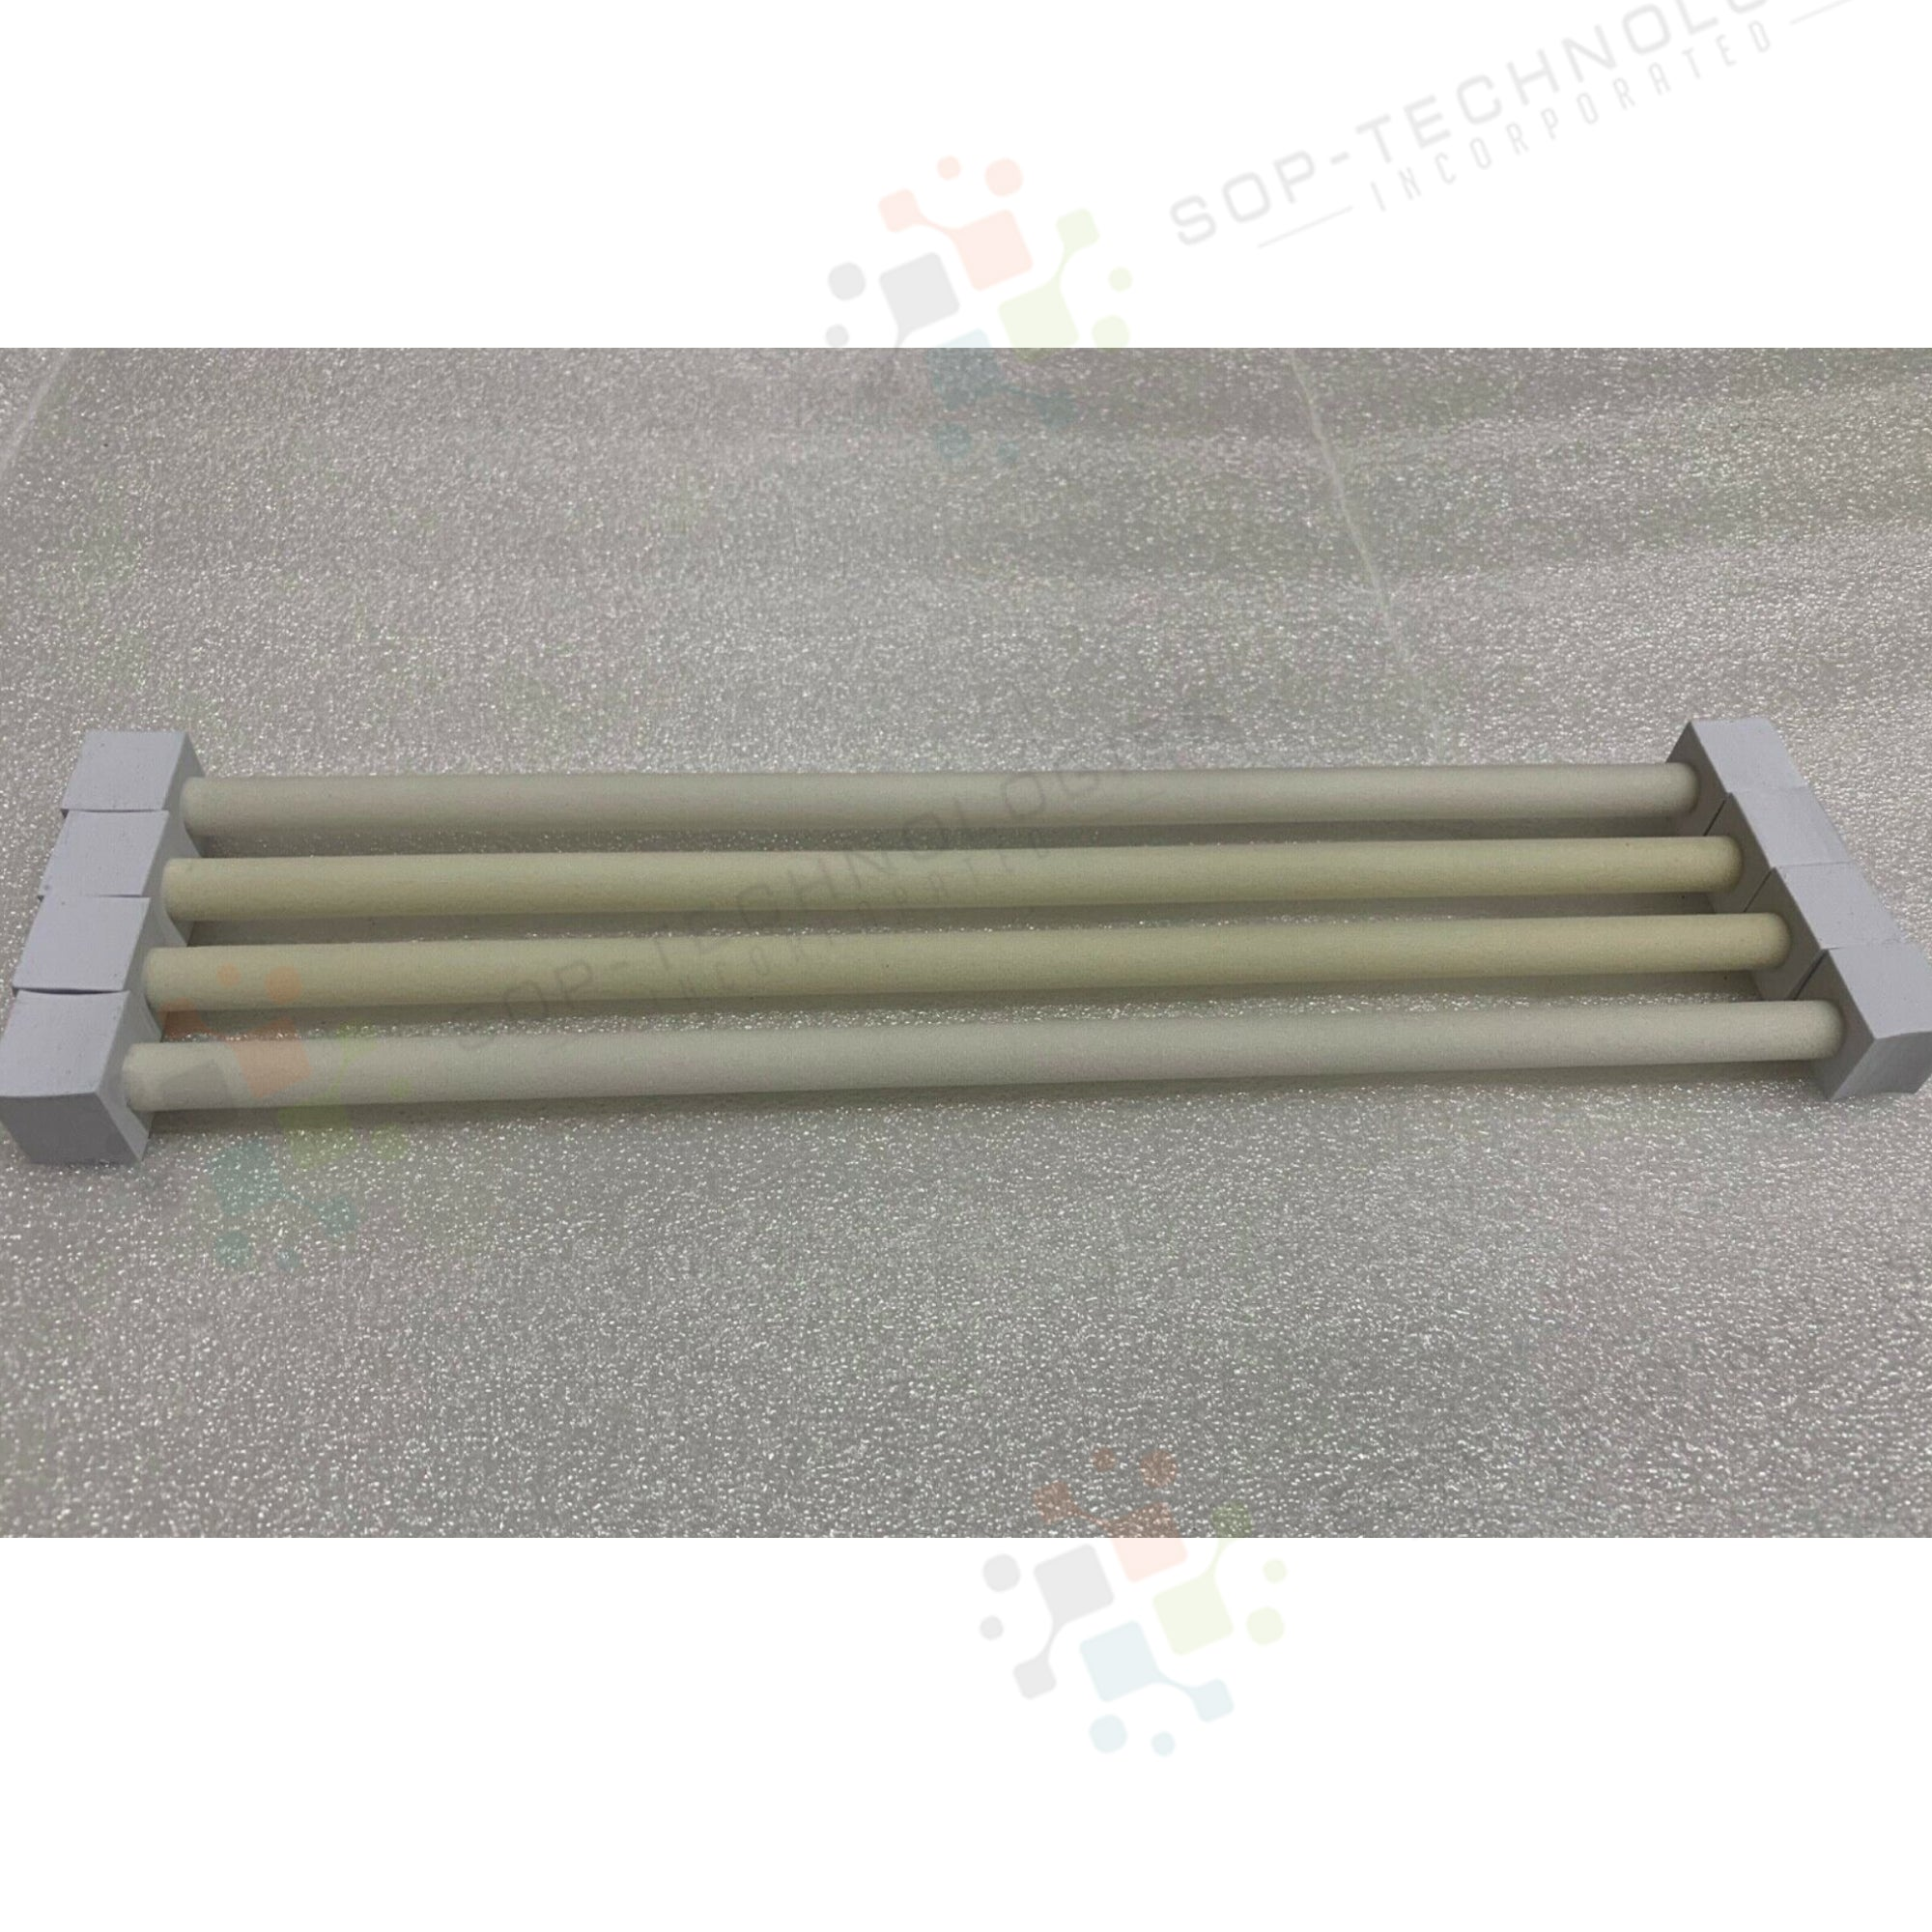 4 White Cleaning Roller for Color Drum Xerox Digital Press Color C75 700 770 - SOP-TECHNOLOGIES, INC.